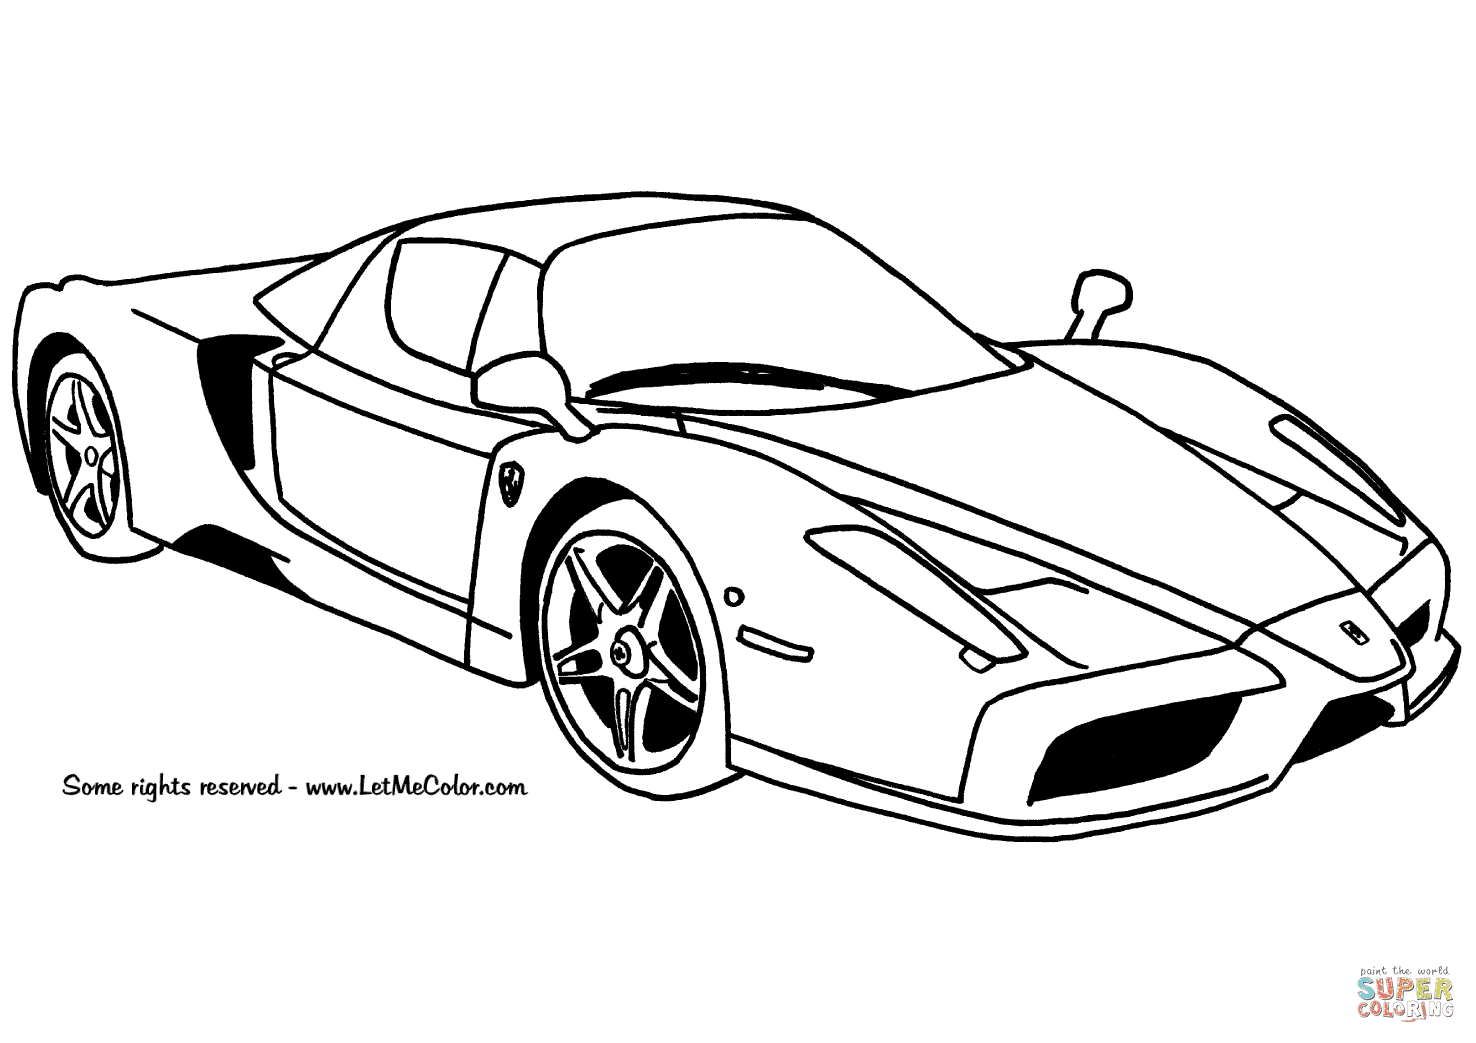 420 Free Ferrari Coloring-pages-book-for-kids-boys.com , Free HD Download